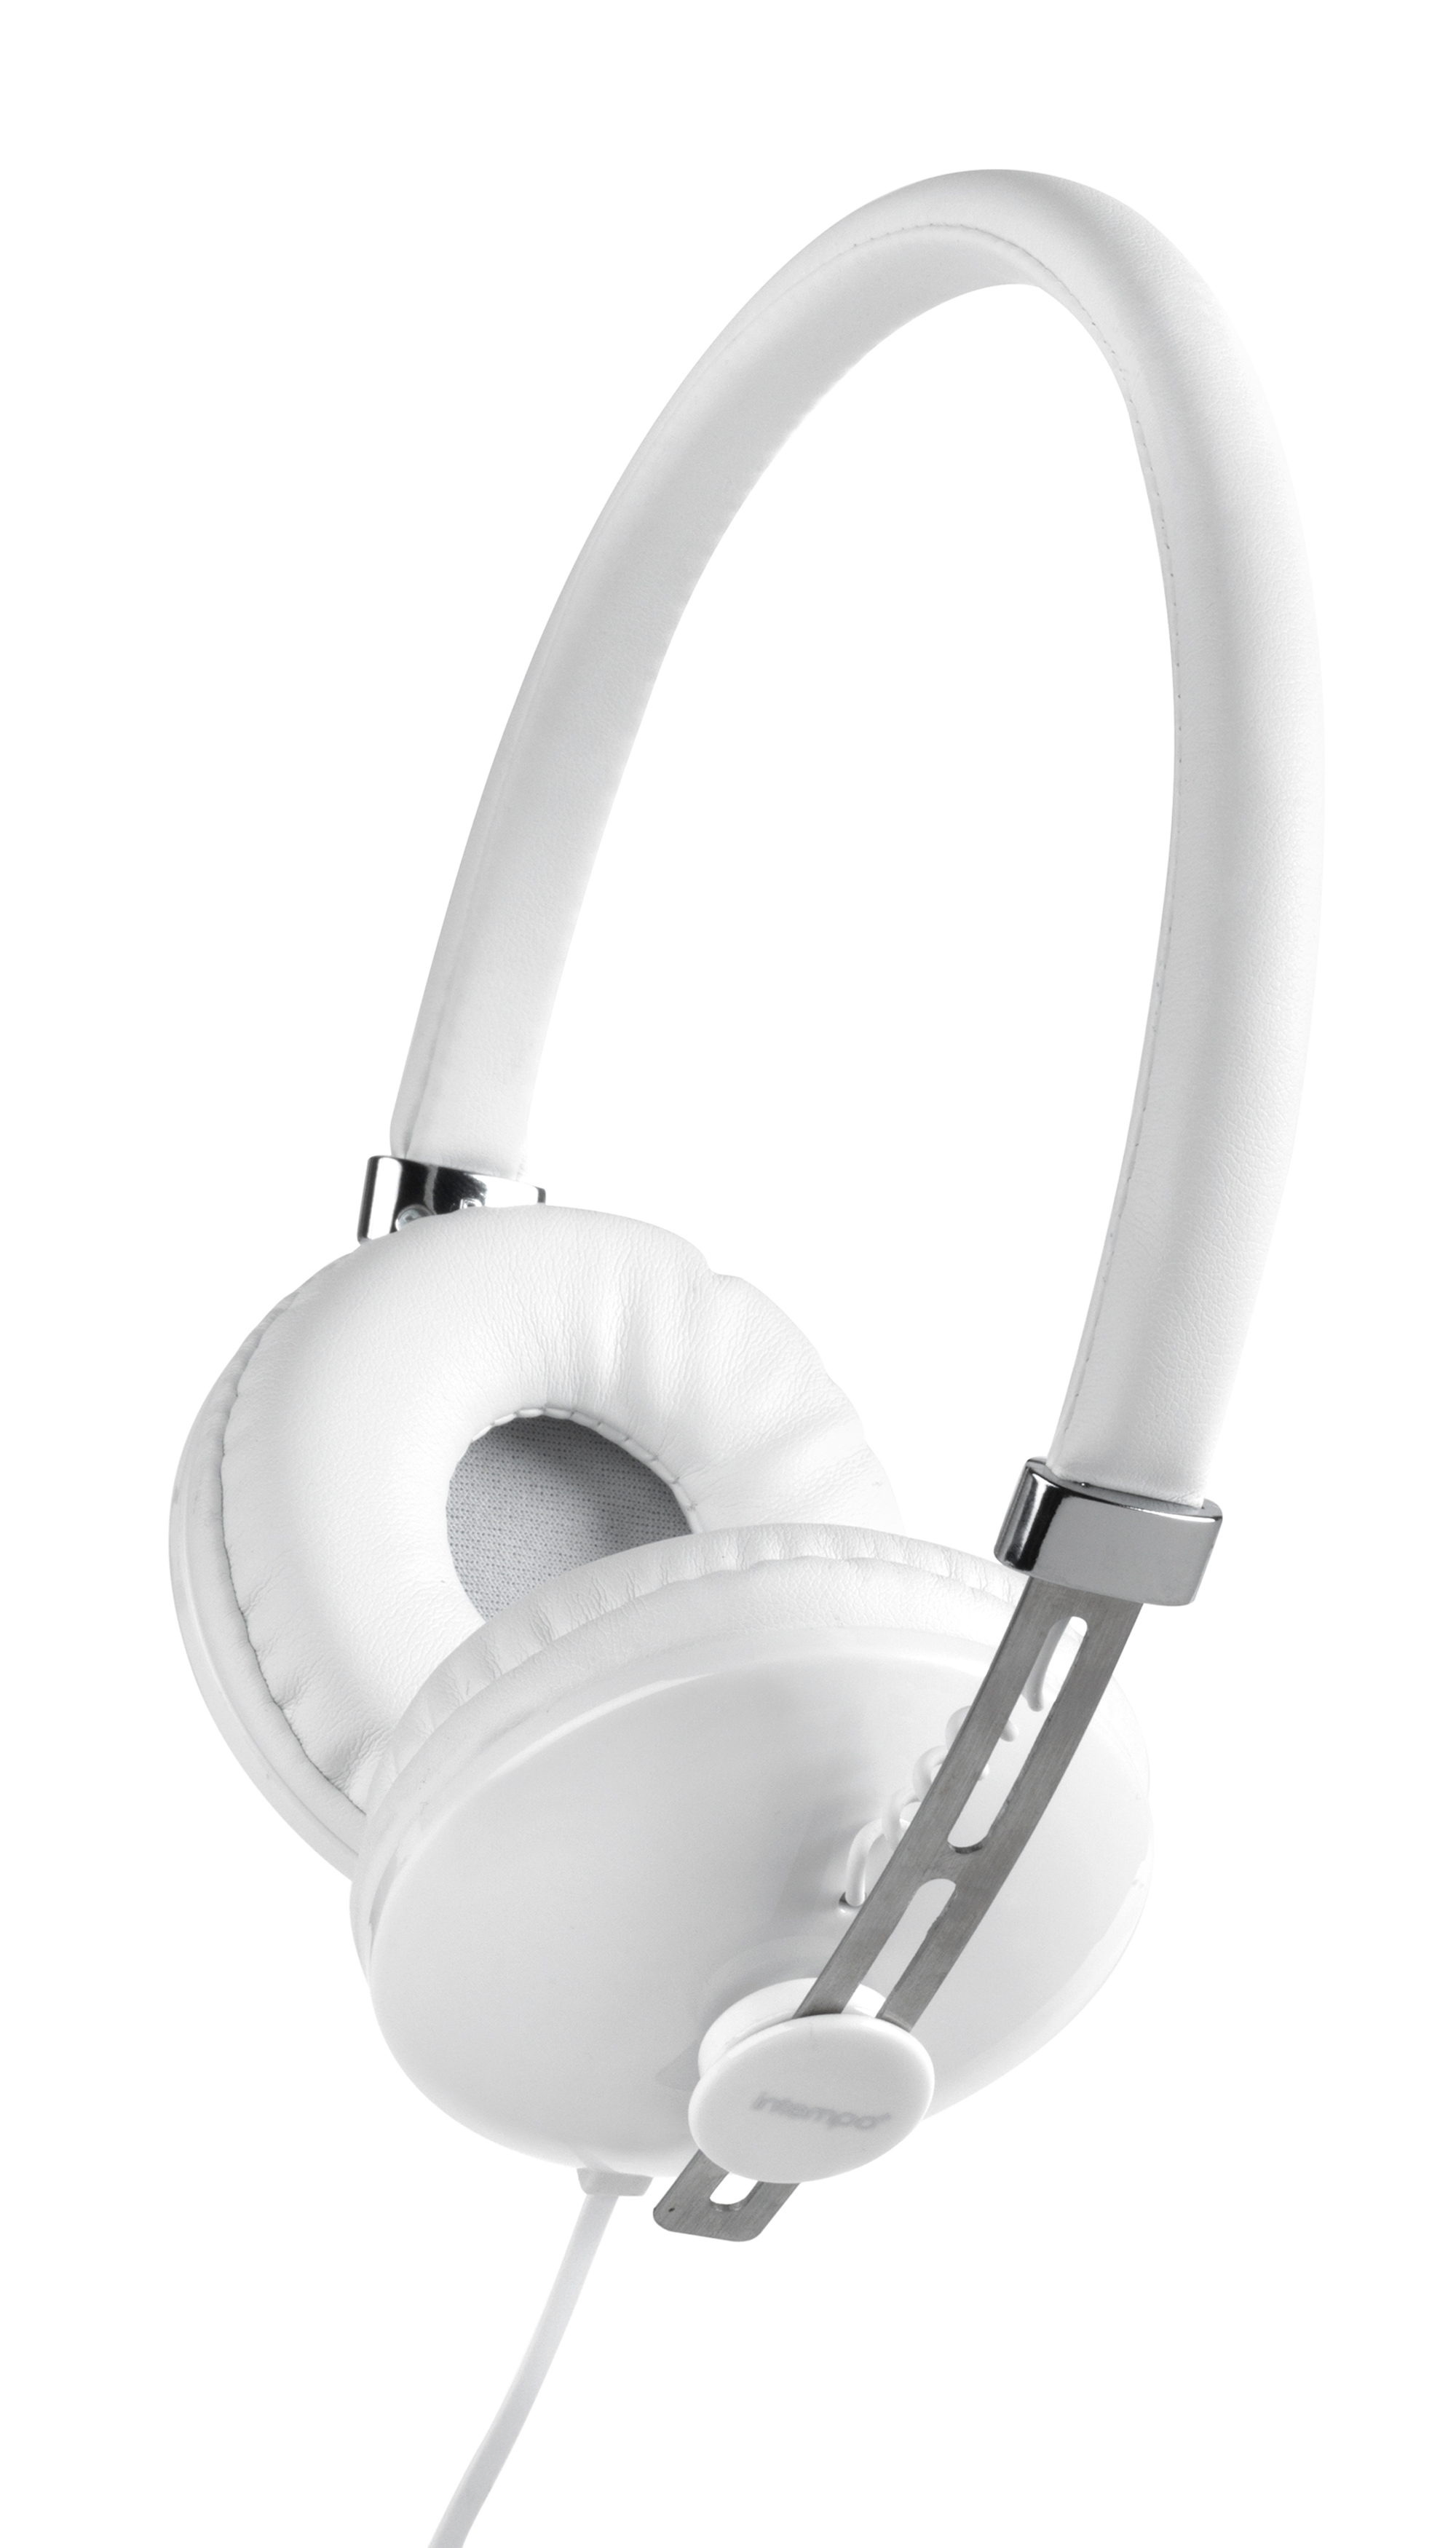 Intempo EE1054WHT Hubbub Over-Ear Headphones for iPhone, iPad, iPod,  Samsung, Smartphones, Tablets & More, 1 2 m Cable, White